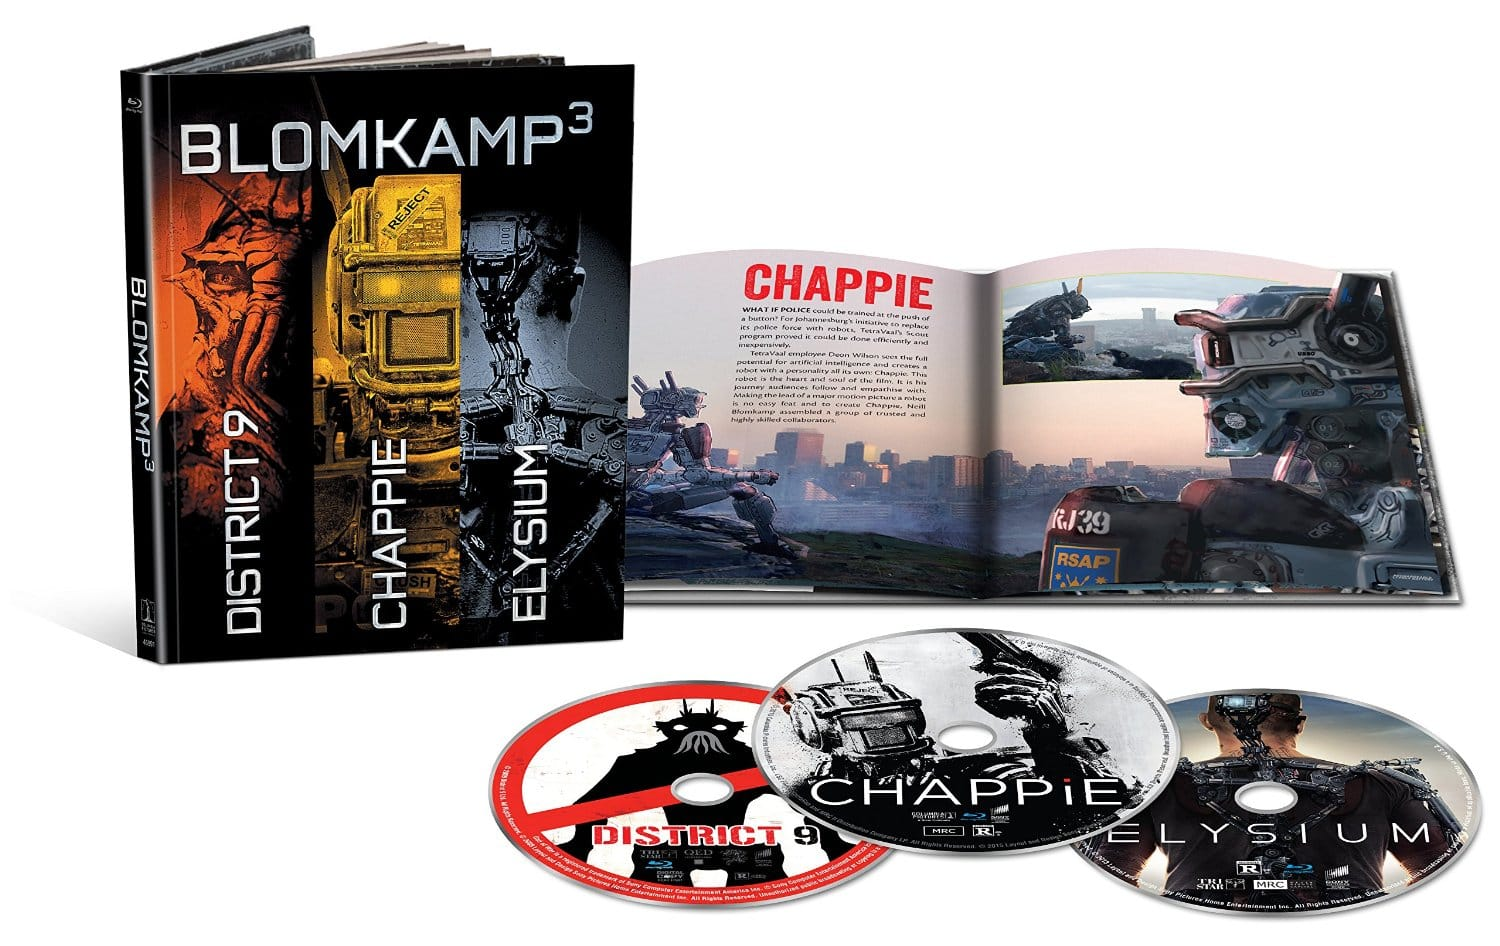 Amazon $13.49  Blomkamp Limited Edition Collection Blu-ray (DigiBook / Chappie / District 9 / Elysium / Blu-ray + UltraViolet)